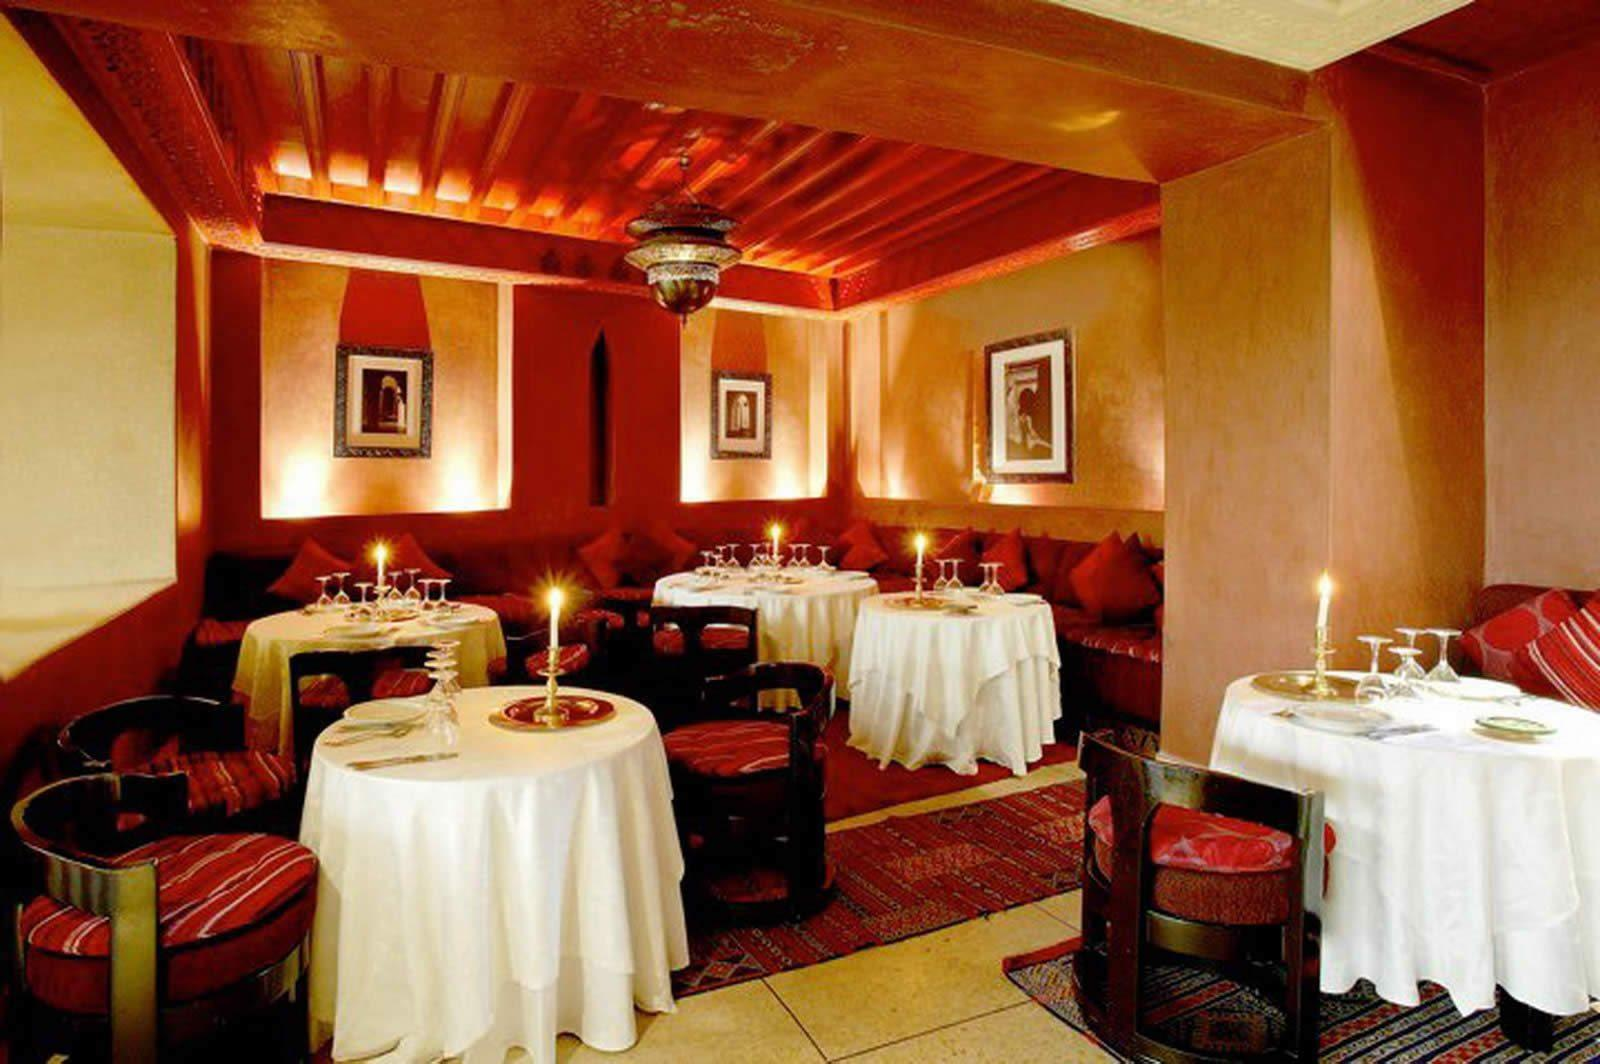 al-fassia-restaurant-gastronomique-traditionnel-quartier-gueliz